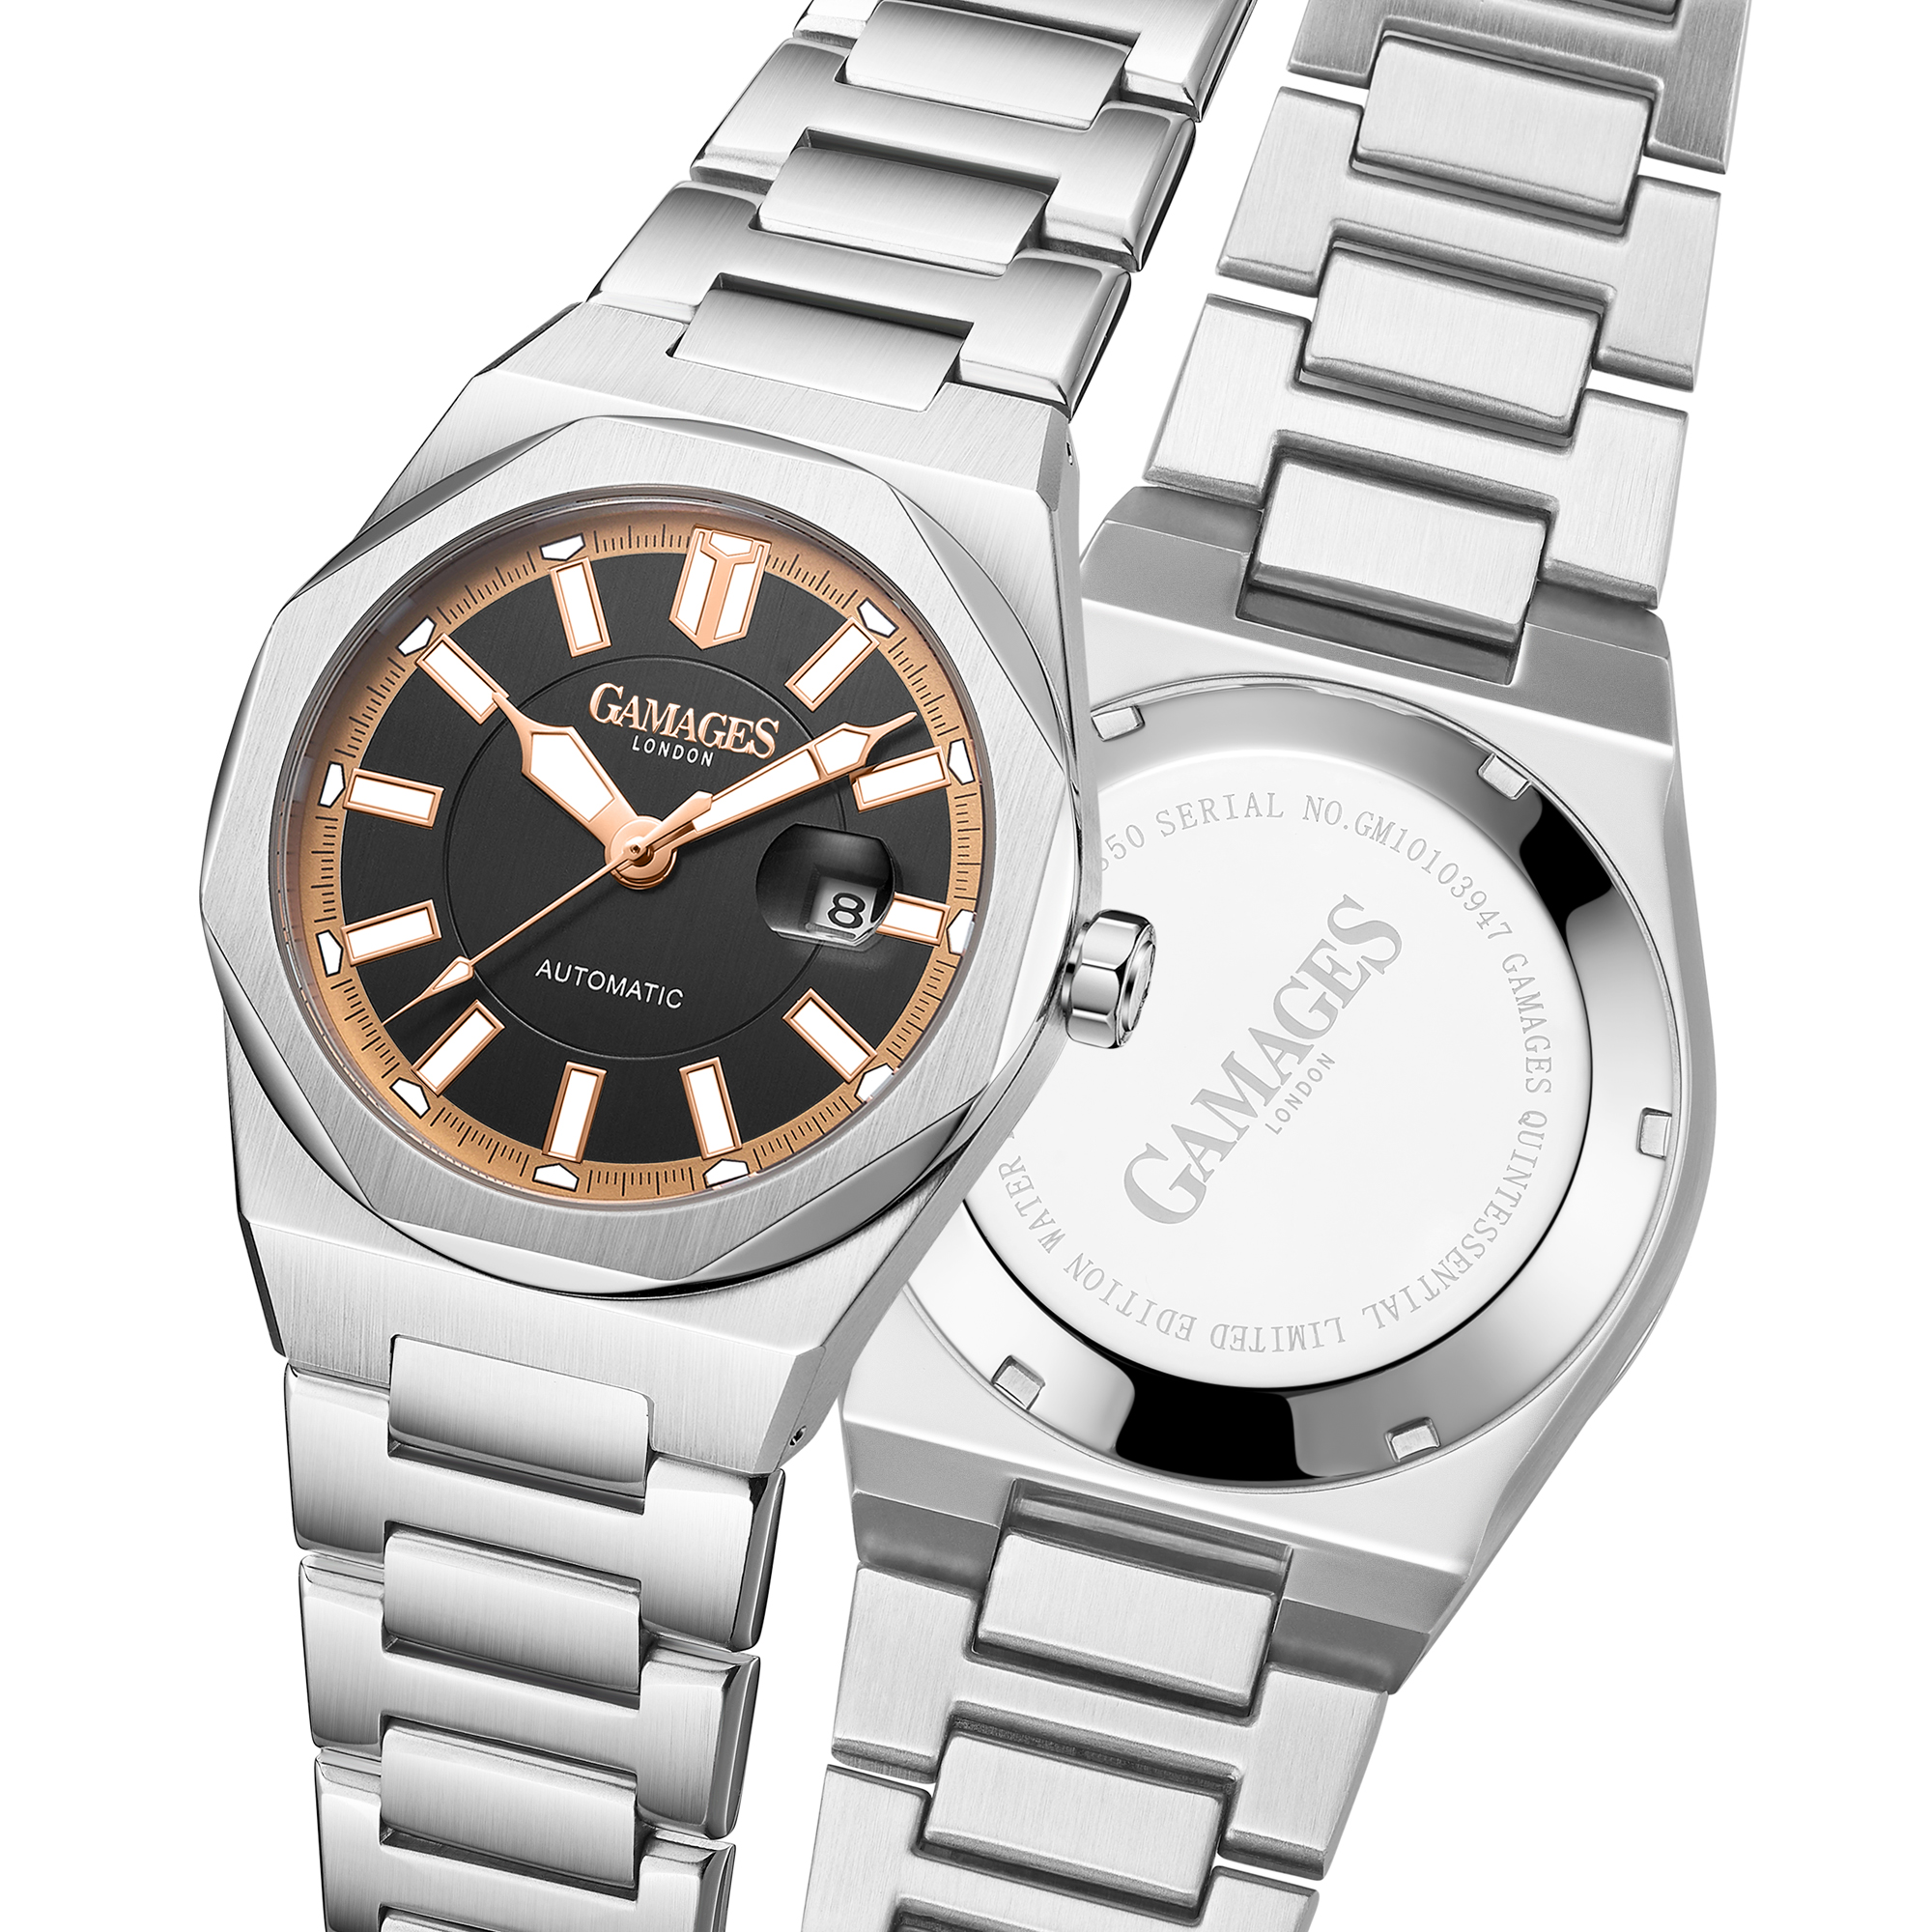 Ltd Edition Hand Assembled GAMAGES Quintessential Automatic Black – 5 Year Warranty & Free Delivery - Image 4 of 5